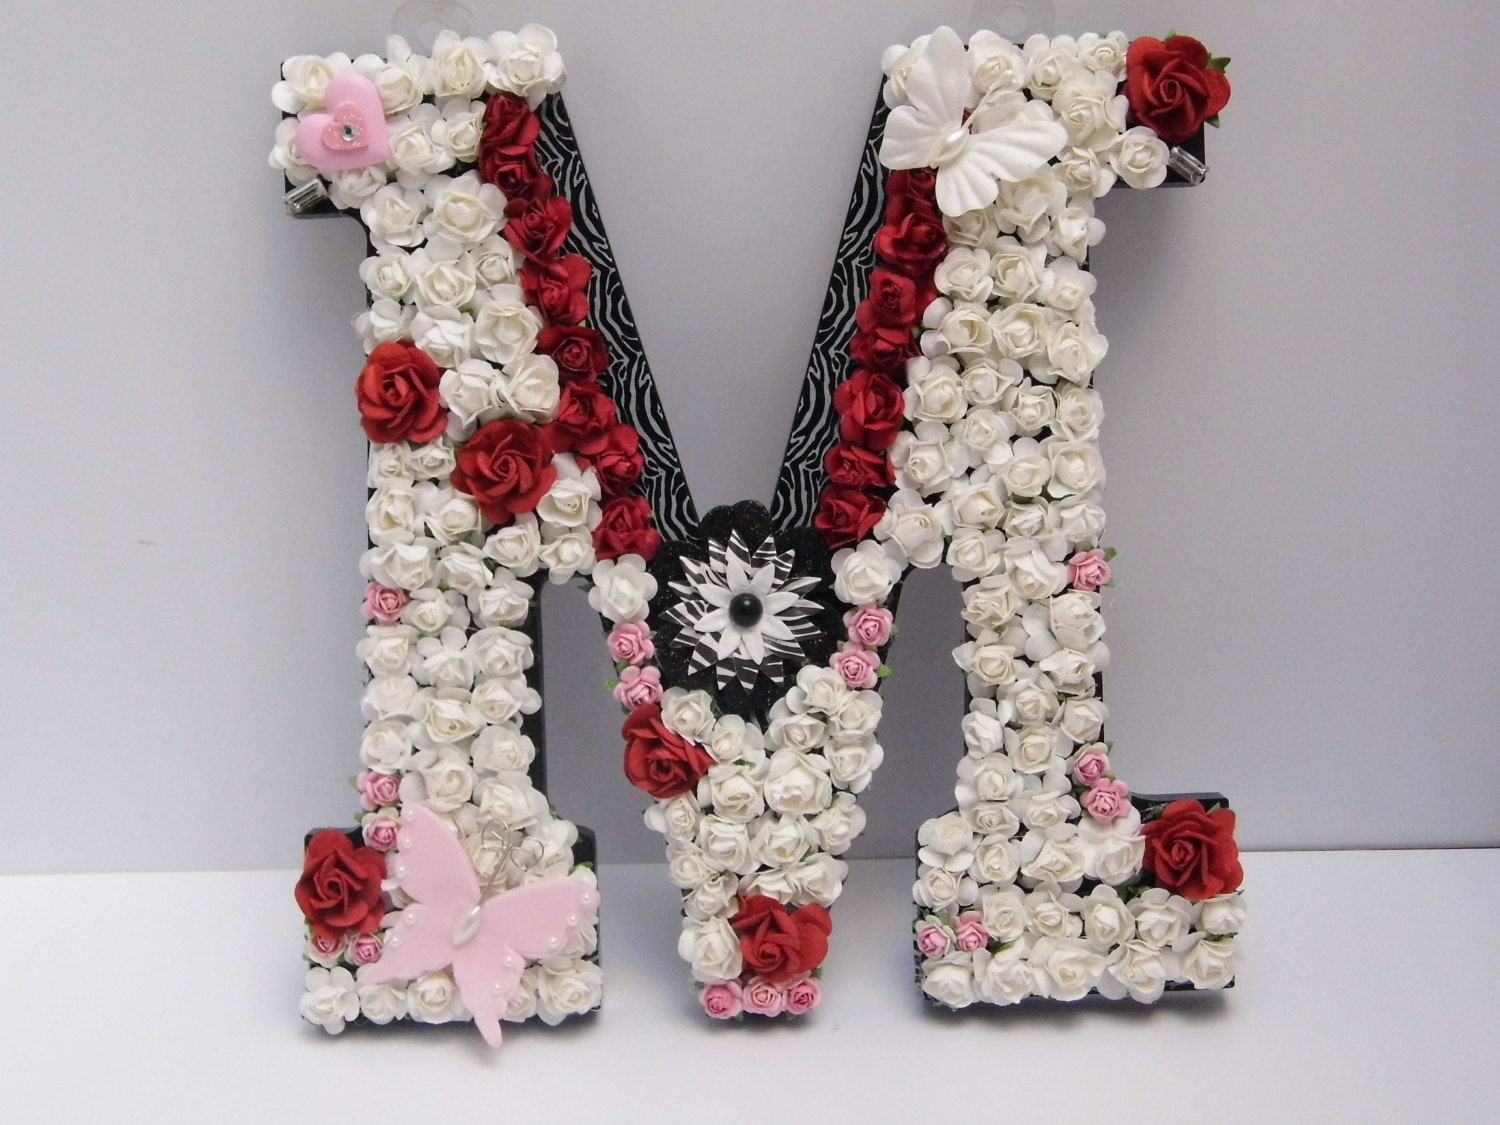 Monogram Wall Hangings floral letter m hand decorated monogram wall hanging pink red